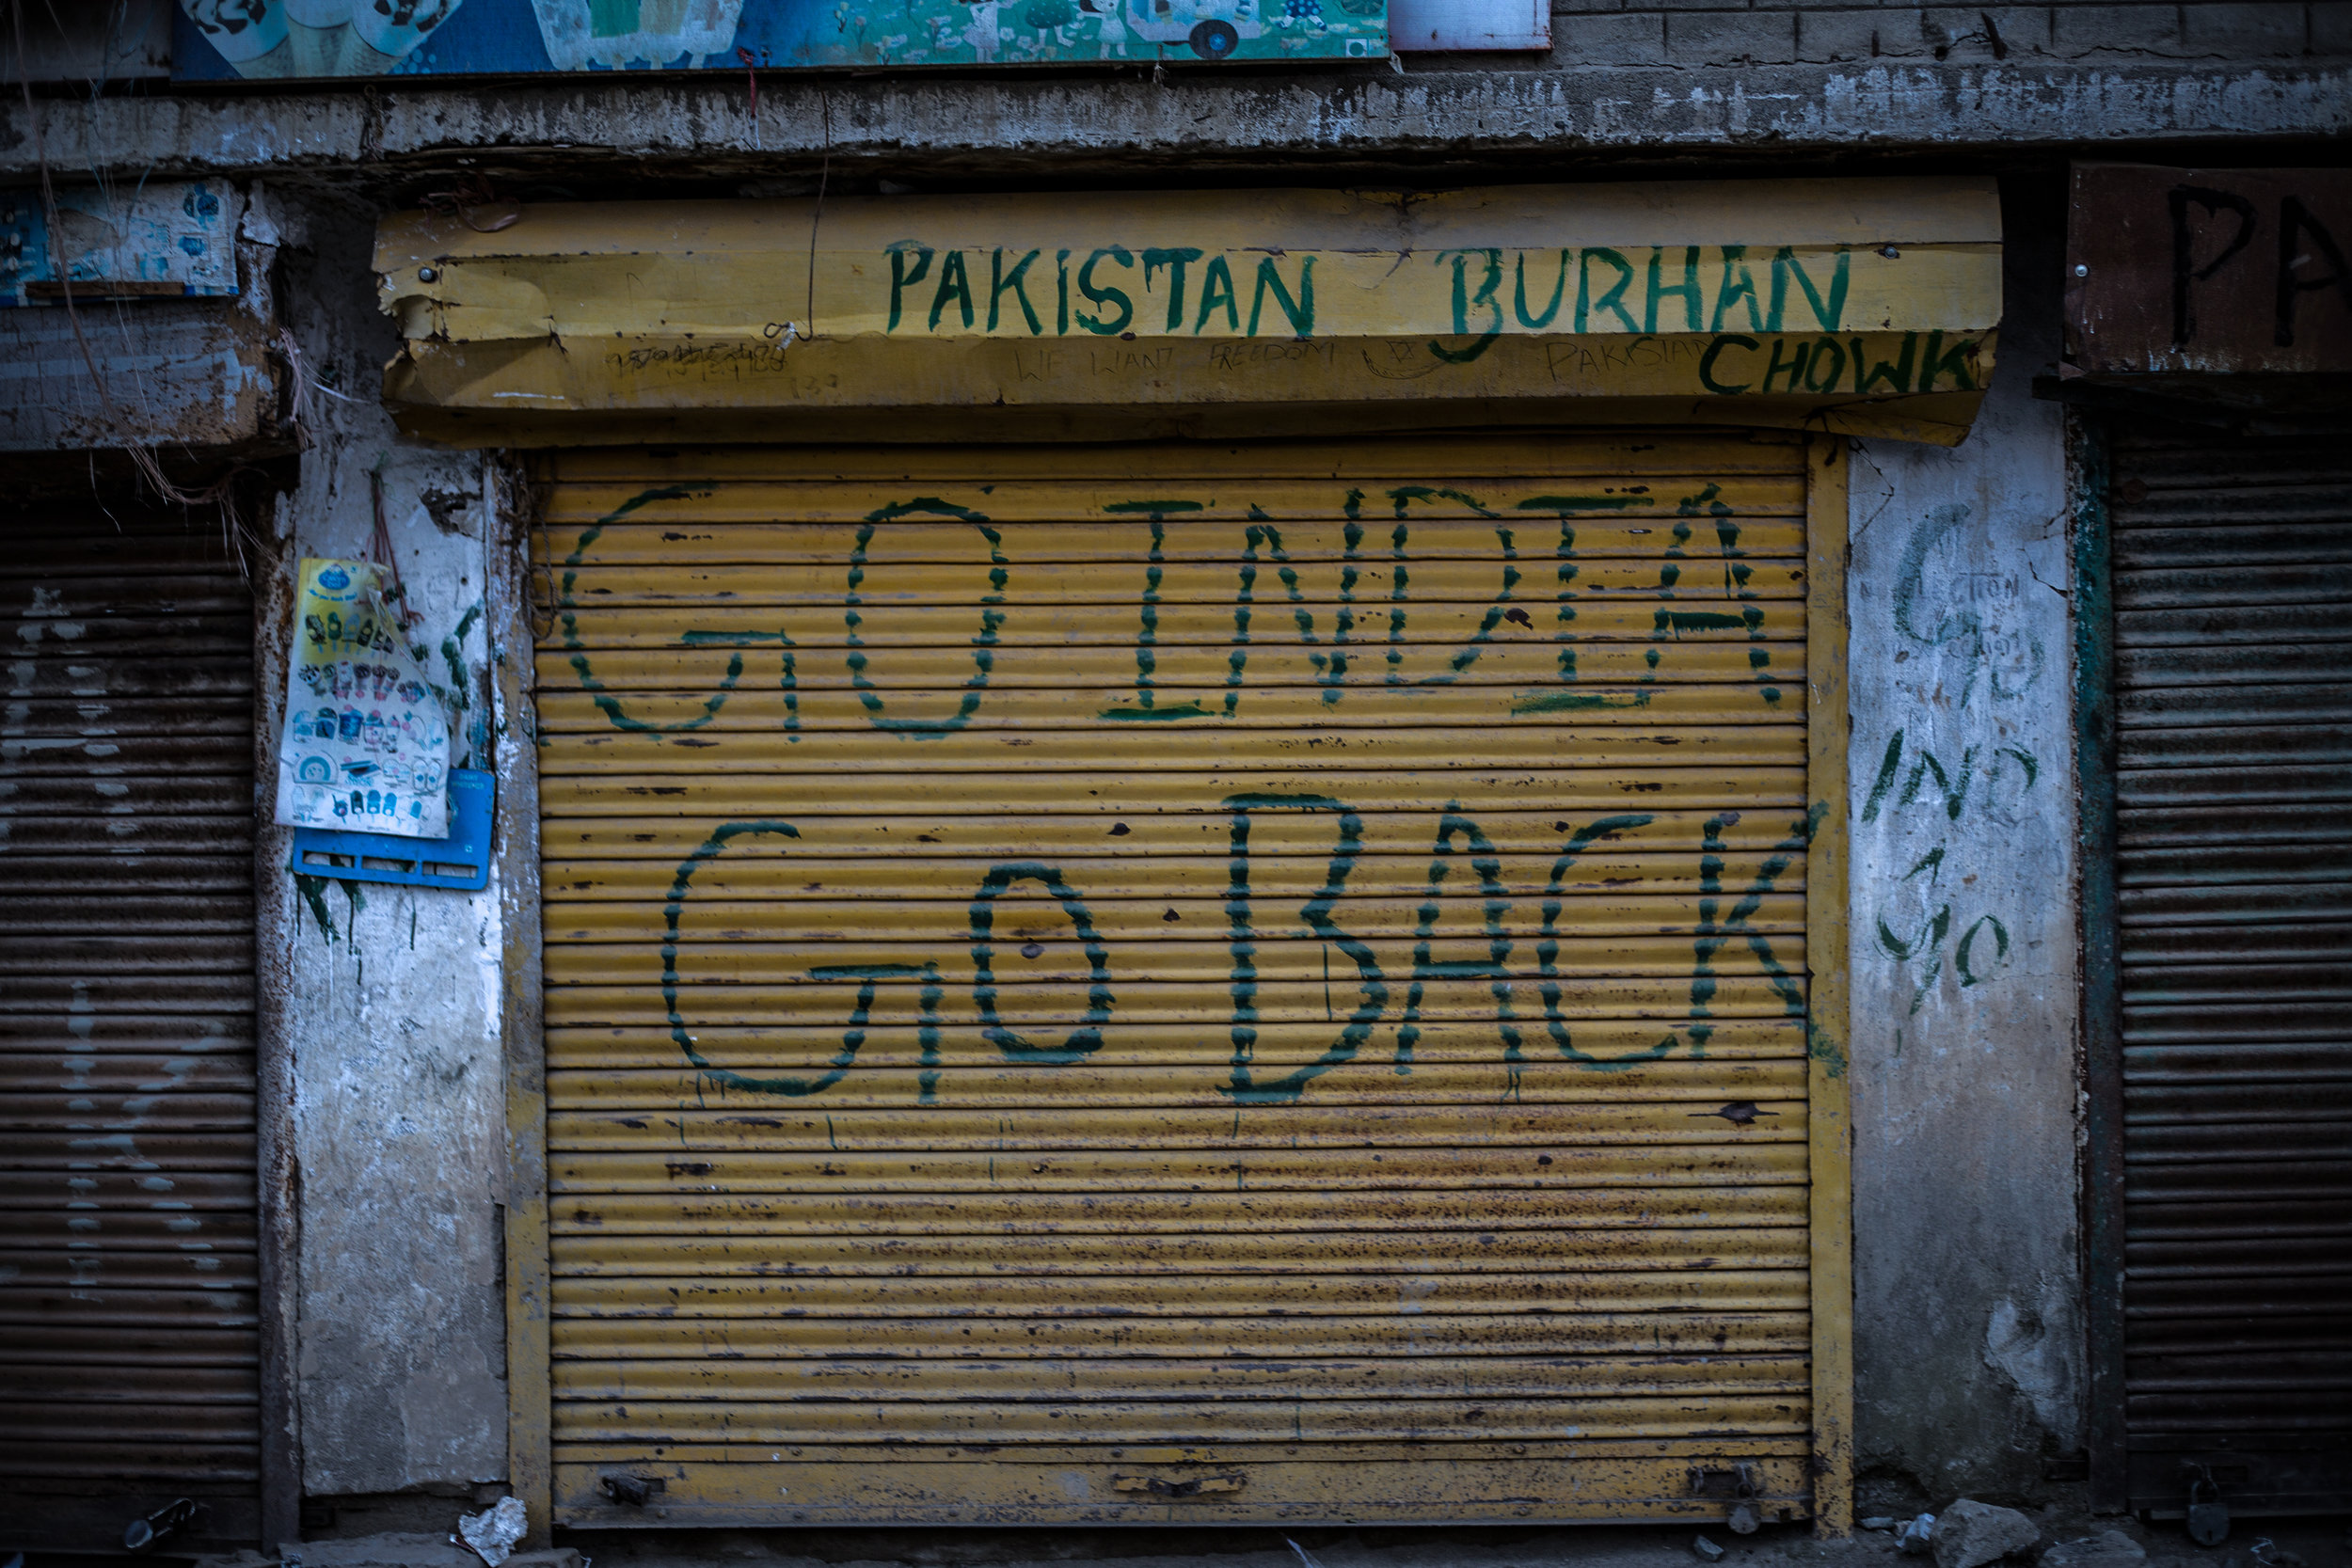 The anti-India sentiment is visible in the area. Various slogans denouncing India, and praising Pakistan, can be seen on the gates of the shops – which the people have closed to mark their protest against the Indian government unilateral decision of stripping Kashmir's autonomy and statehood. Photo by Avinash Giri.